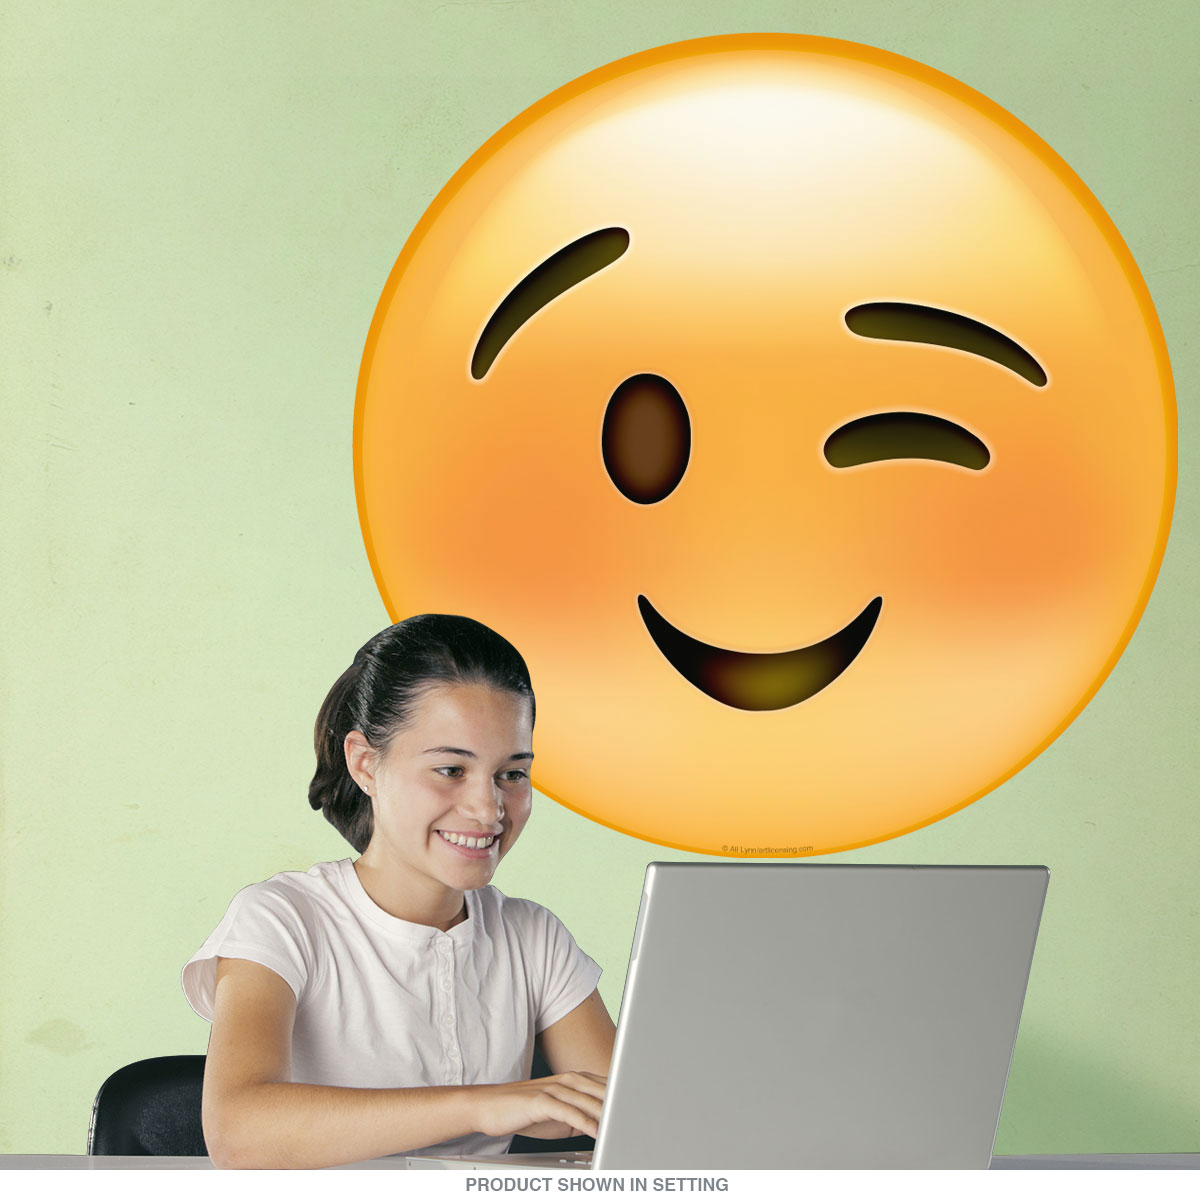 Emoji Smiley Face Winking Eyes Wall Decal | Game Room Decor ...